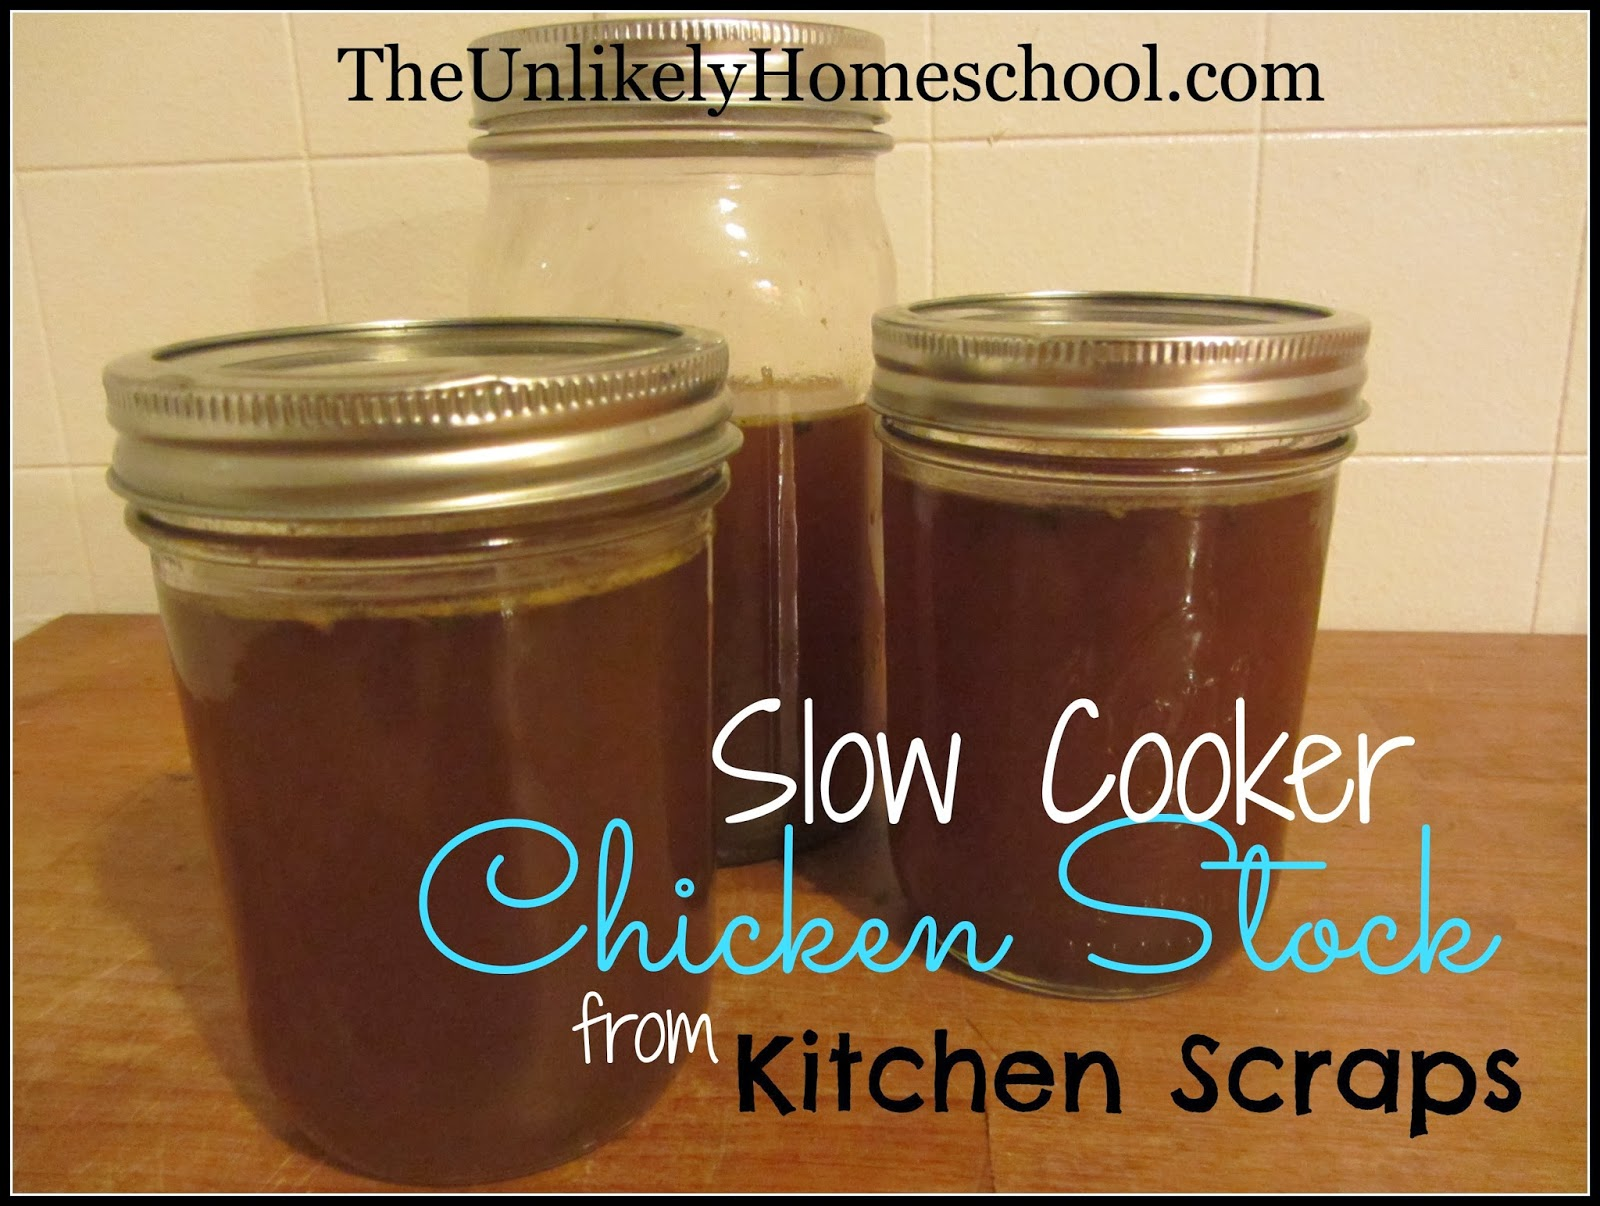 The Unlikely Homeschool: Slow Cooker Chicken Stock from Kitchen Scraps